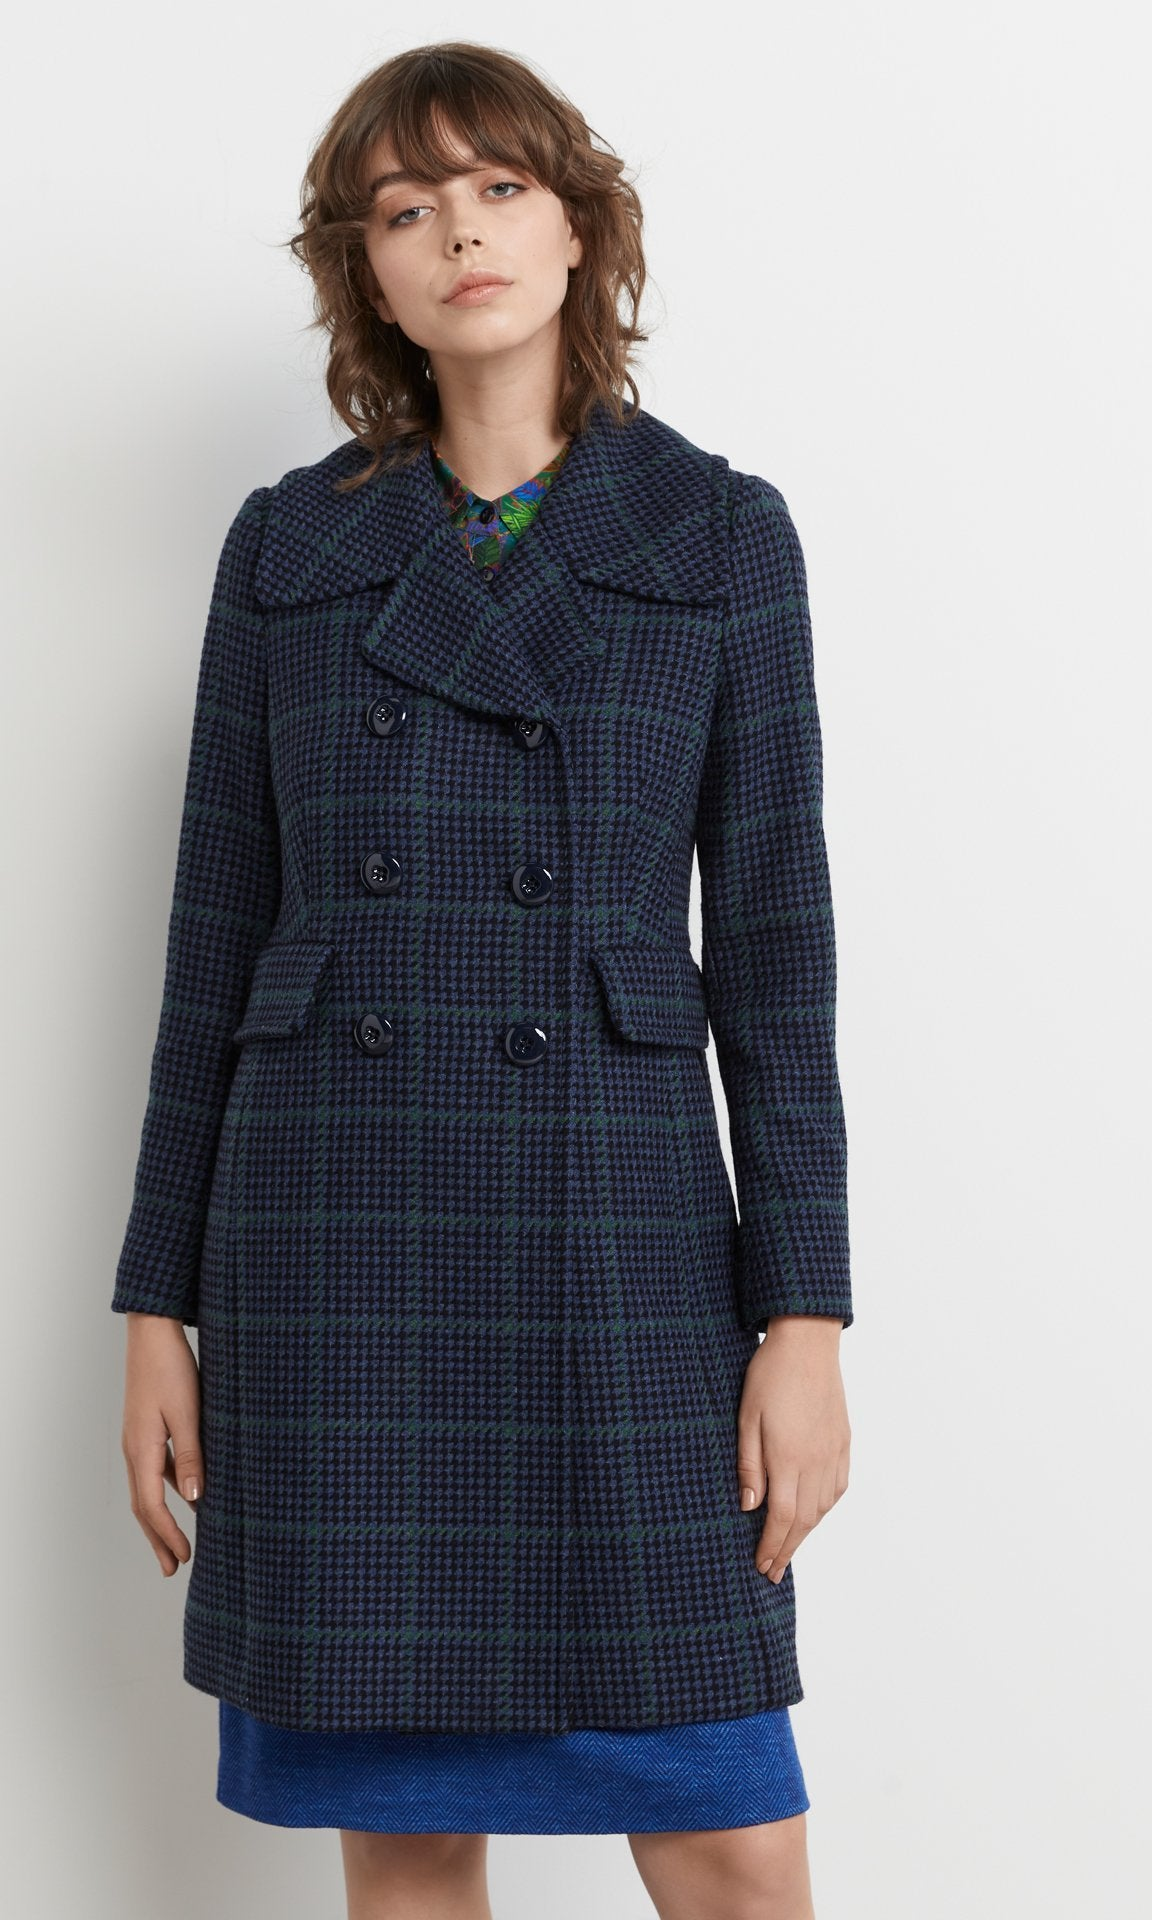 Hogarth Coat Blue/Green